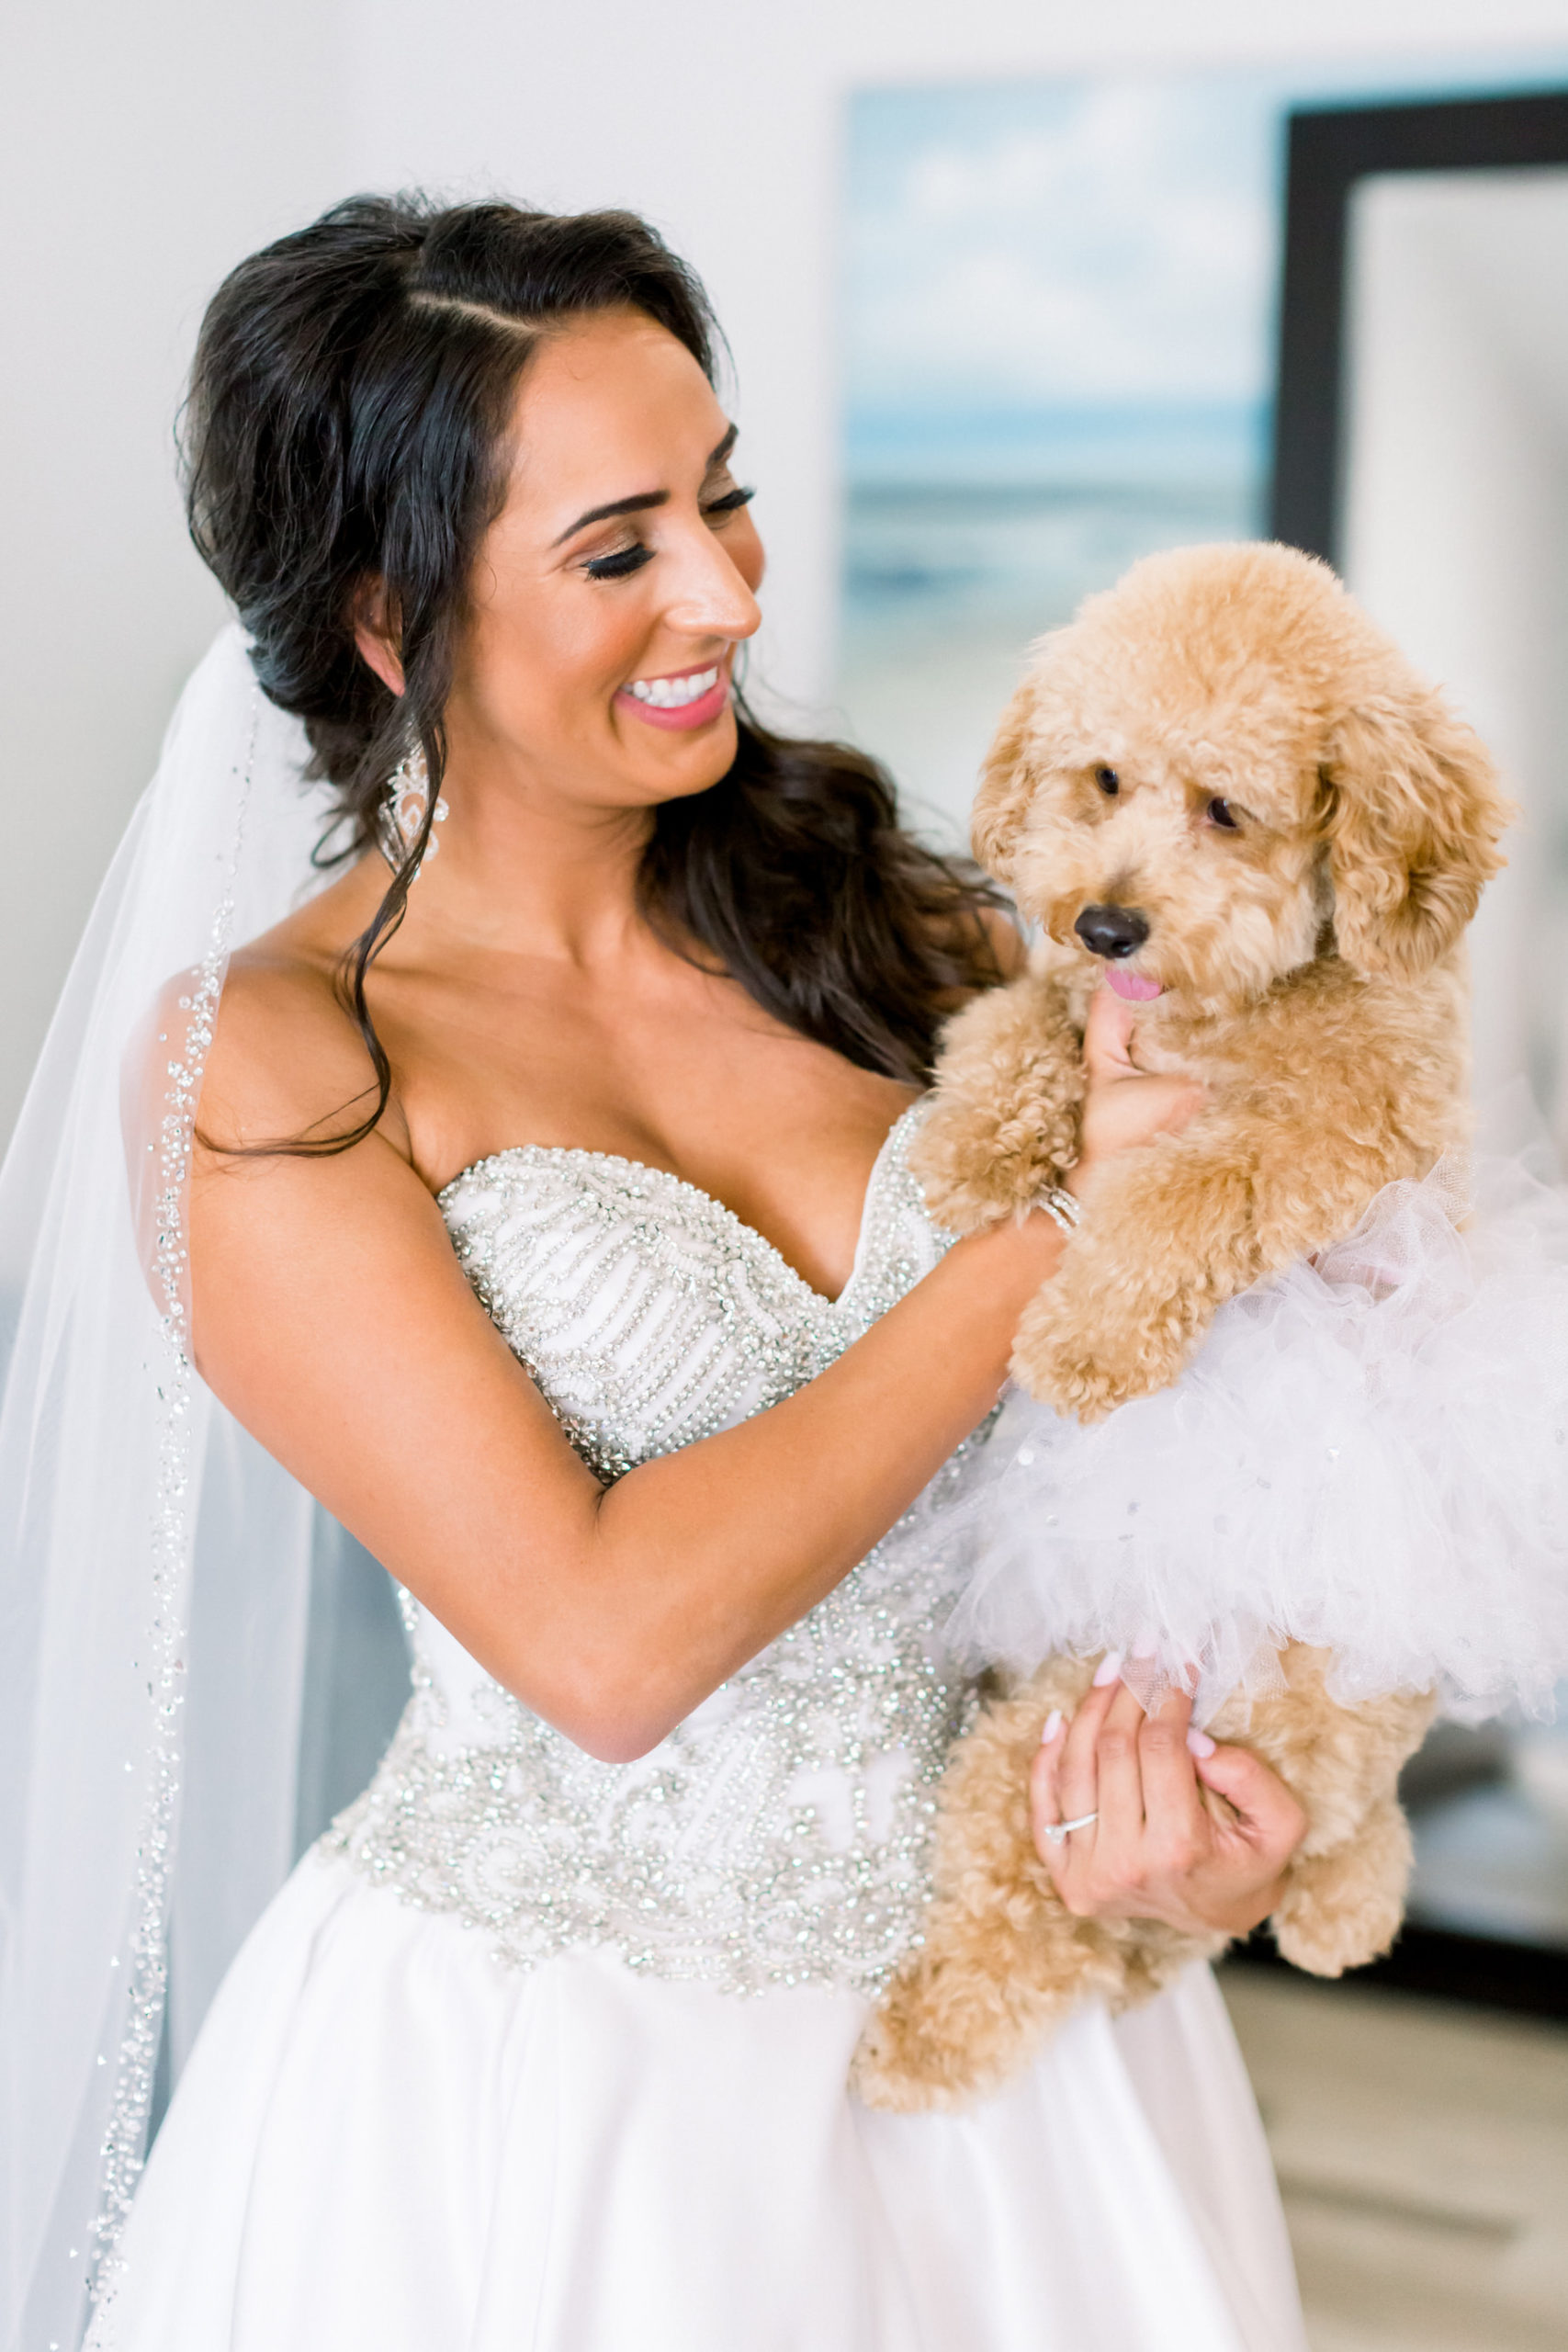 Florida Bride in Sweetheart and Strapless Rhinestone Bodice with Ballgown Skirt Wedding Dress Holding Pet Dog Poodle Portrait | Tampa Bay Wedding Photographer Shauna and Jordon Photography | Pet Planner FairyTail Pet Care | Wedding Dress Truly Forever Bridal